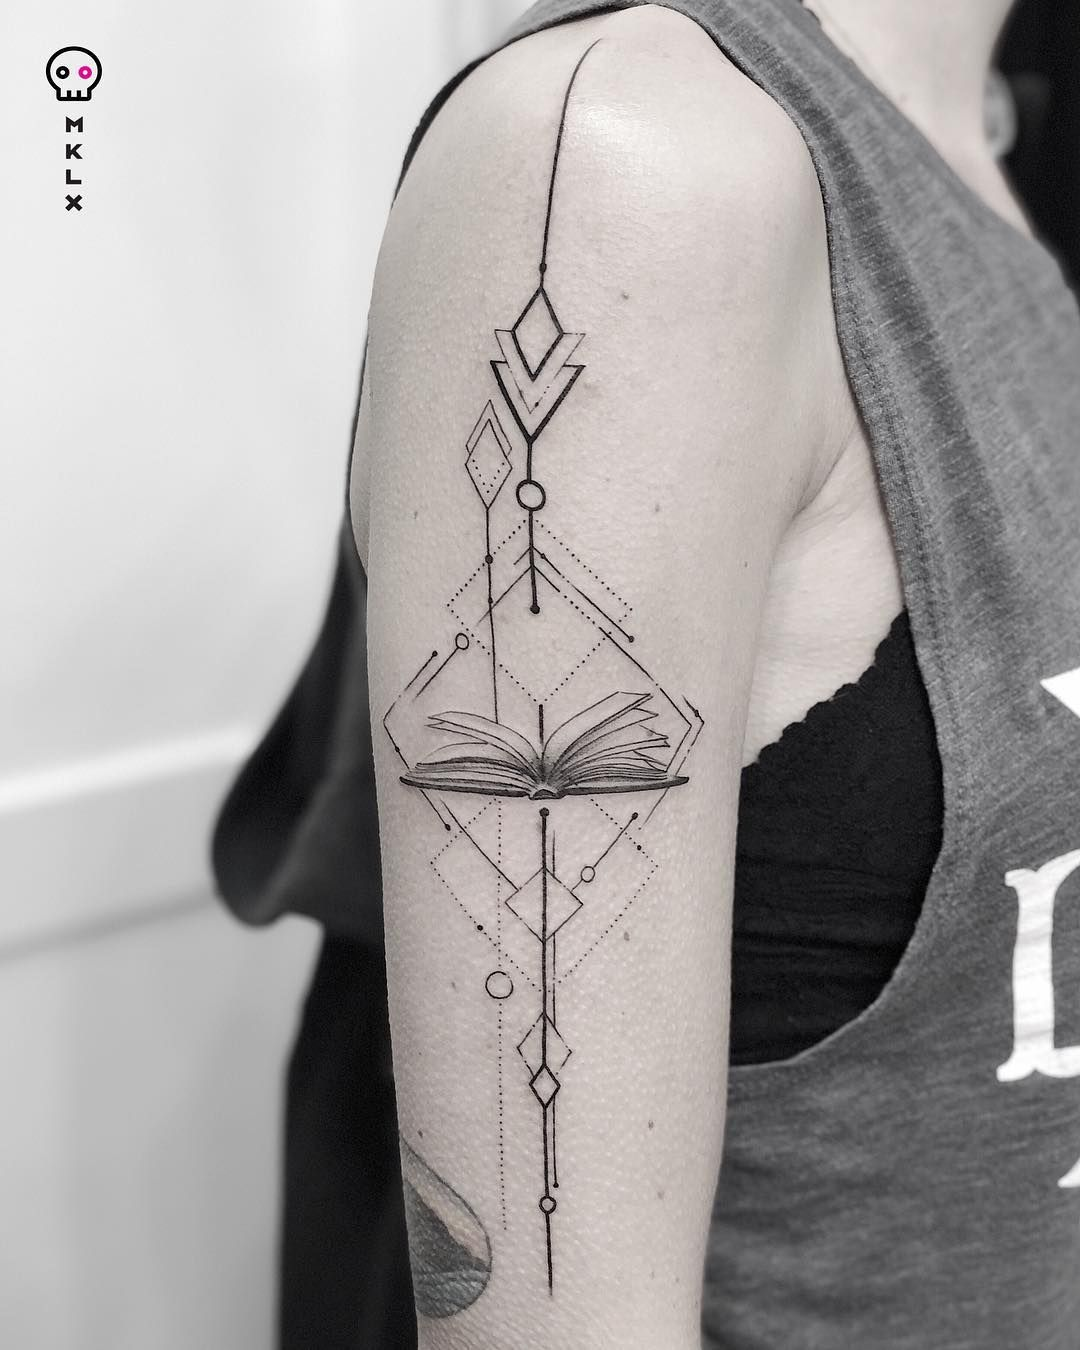 Being A Book Lover Isn T Just A Hobby It S A Way Of Life For Bibliophiles The Stories We Delve Into Become Very Bookish Tattoos Geometric Tattoo Book Tattoo